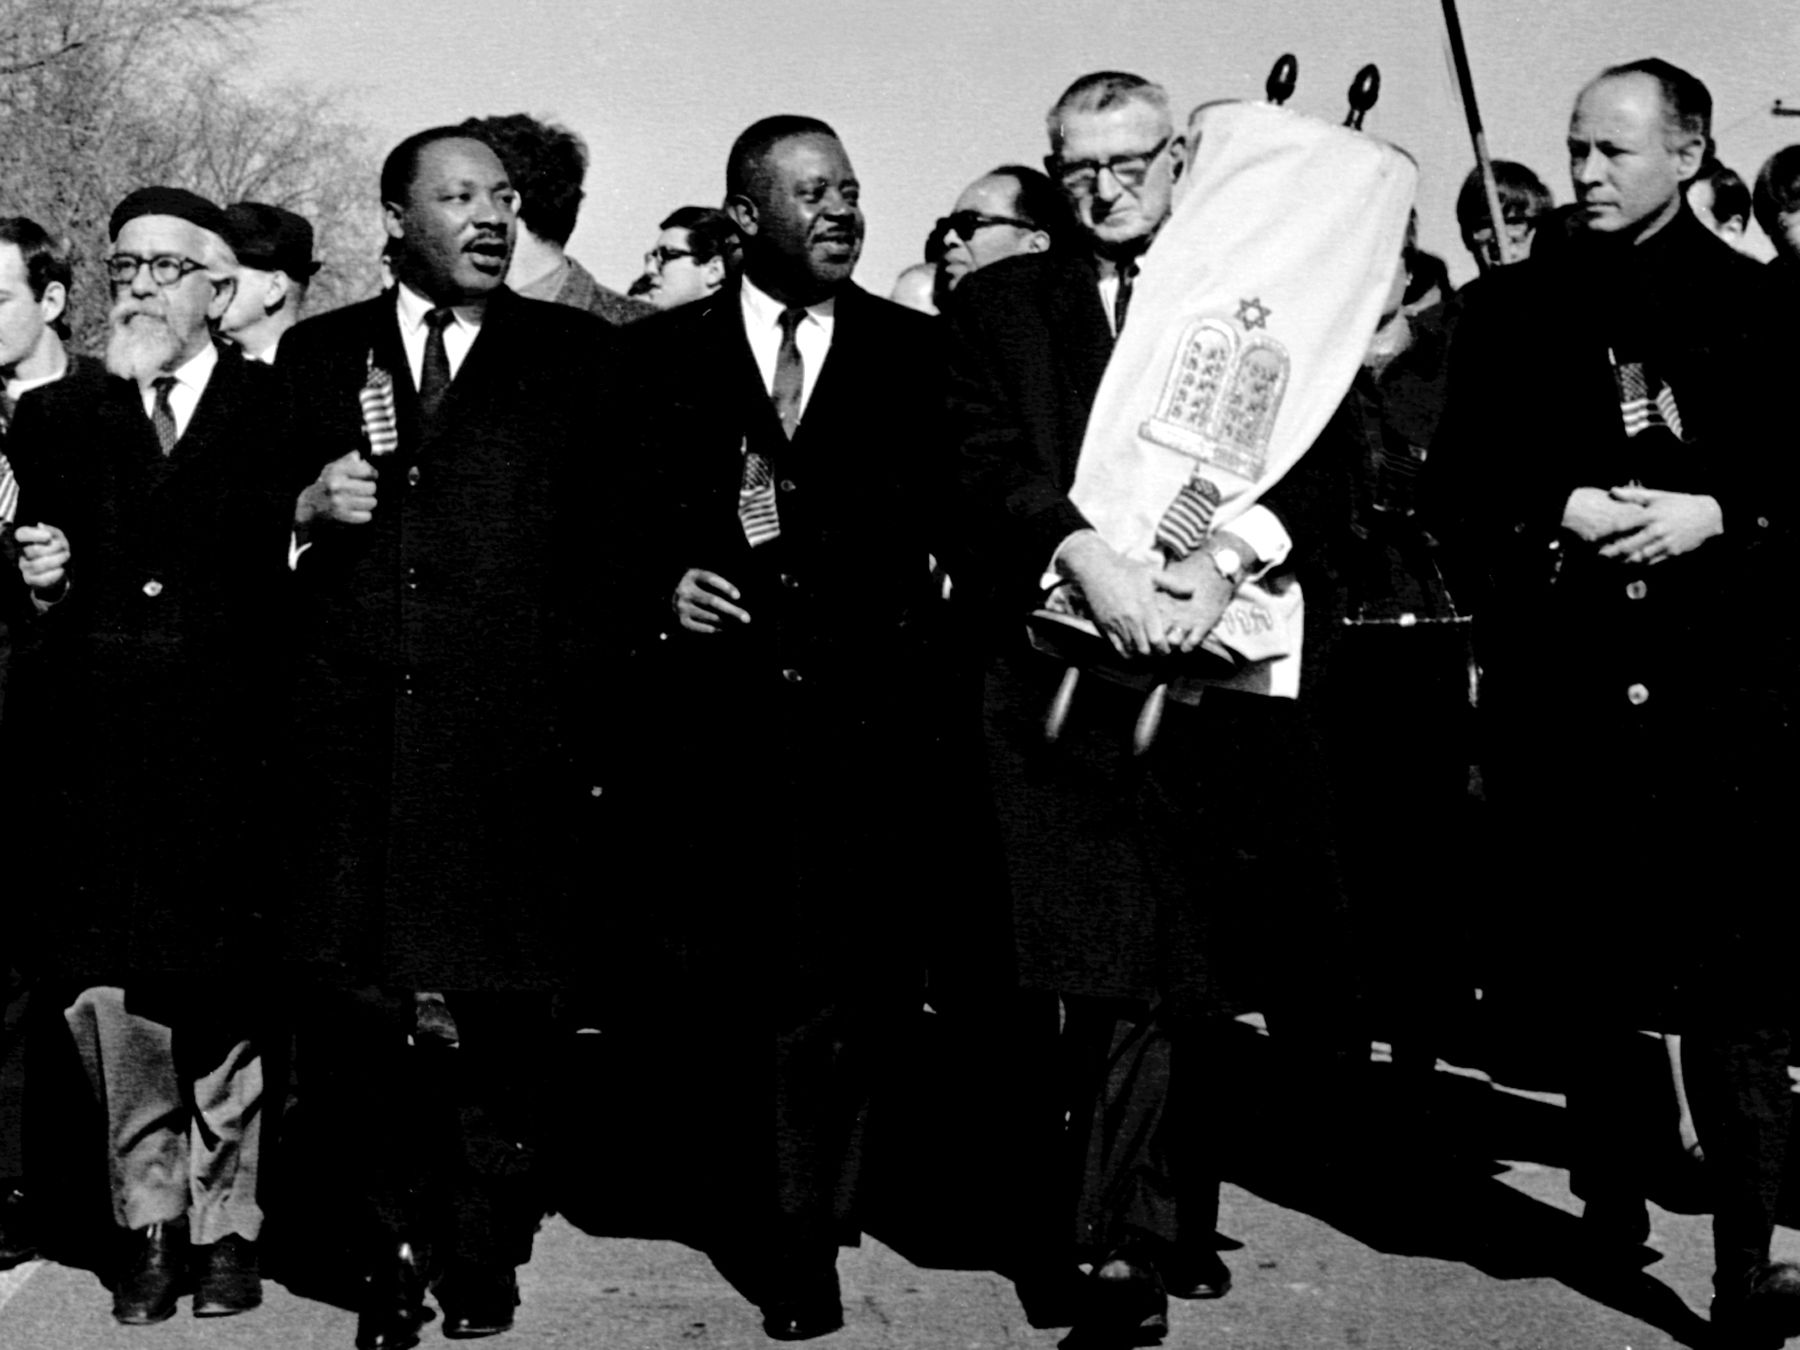 best images about martin luther king jr martin 17 best images about martin luther king jr martin luther king martin luther king speech and i have a dream